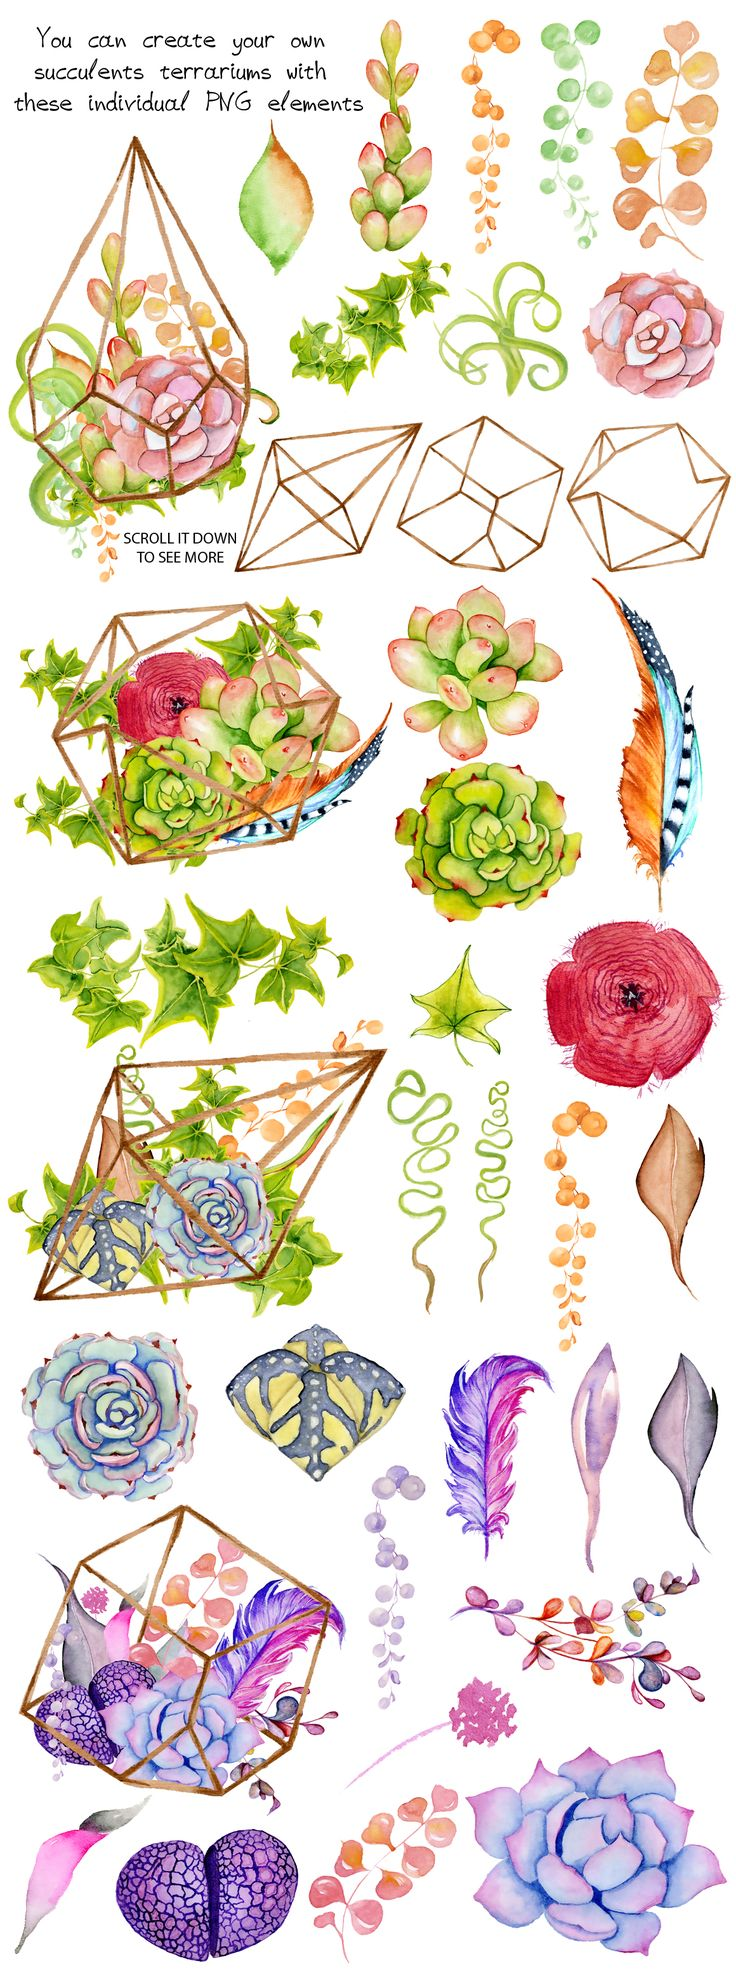 Watercolor Succulents and cactus terrariums. Cactus clipart. Hand painted clipart, succulents clip art.  Item details: 38PNG files (300 dpi, RGB, transparent background) size (wide side) aprox.: 1800-2400 px